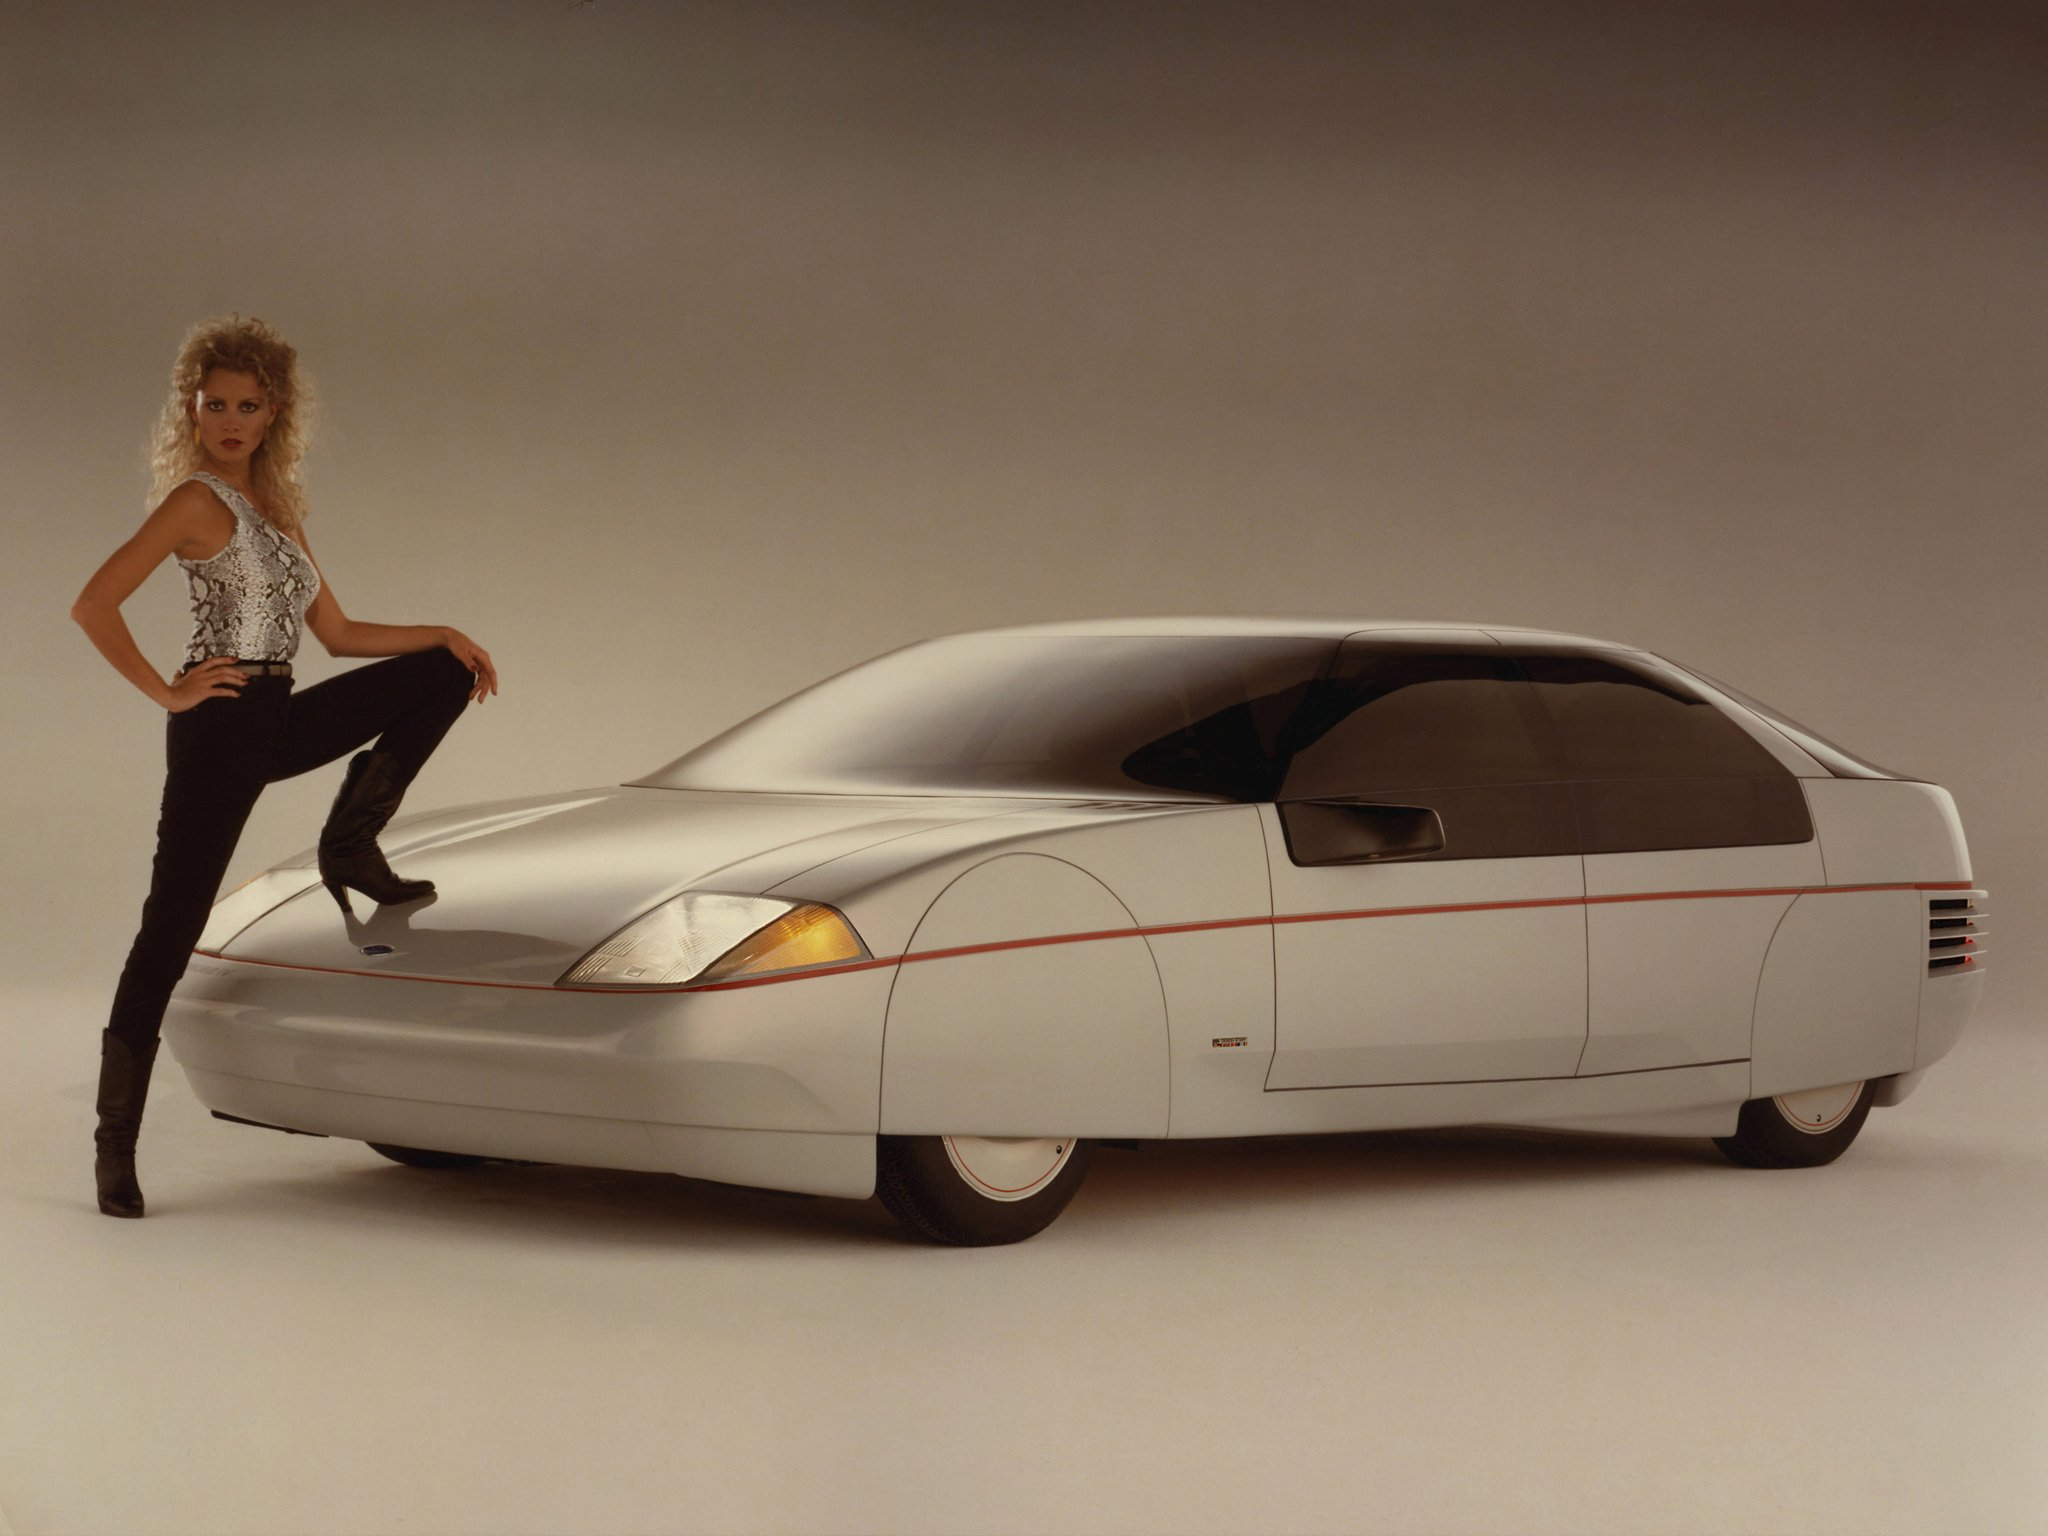 1982 Ford Probe IV Concept g